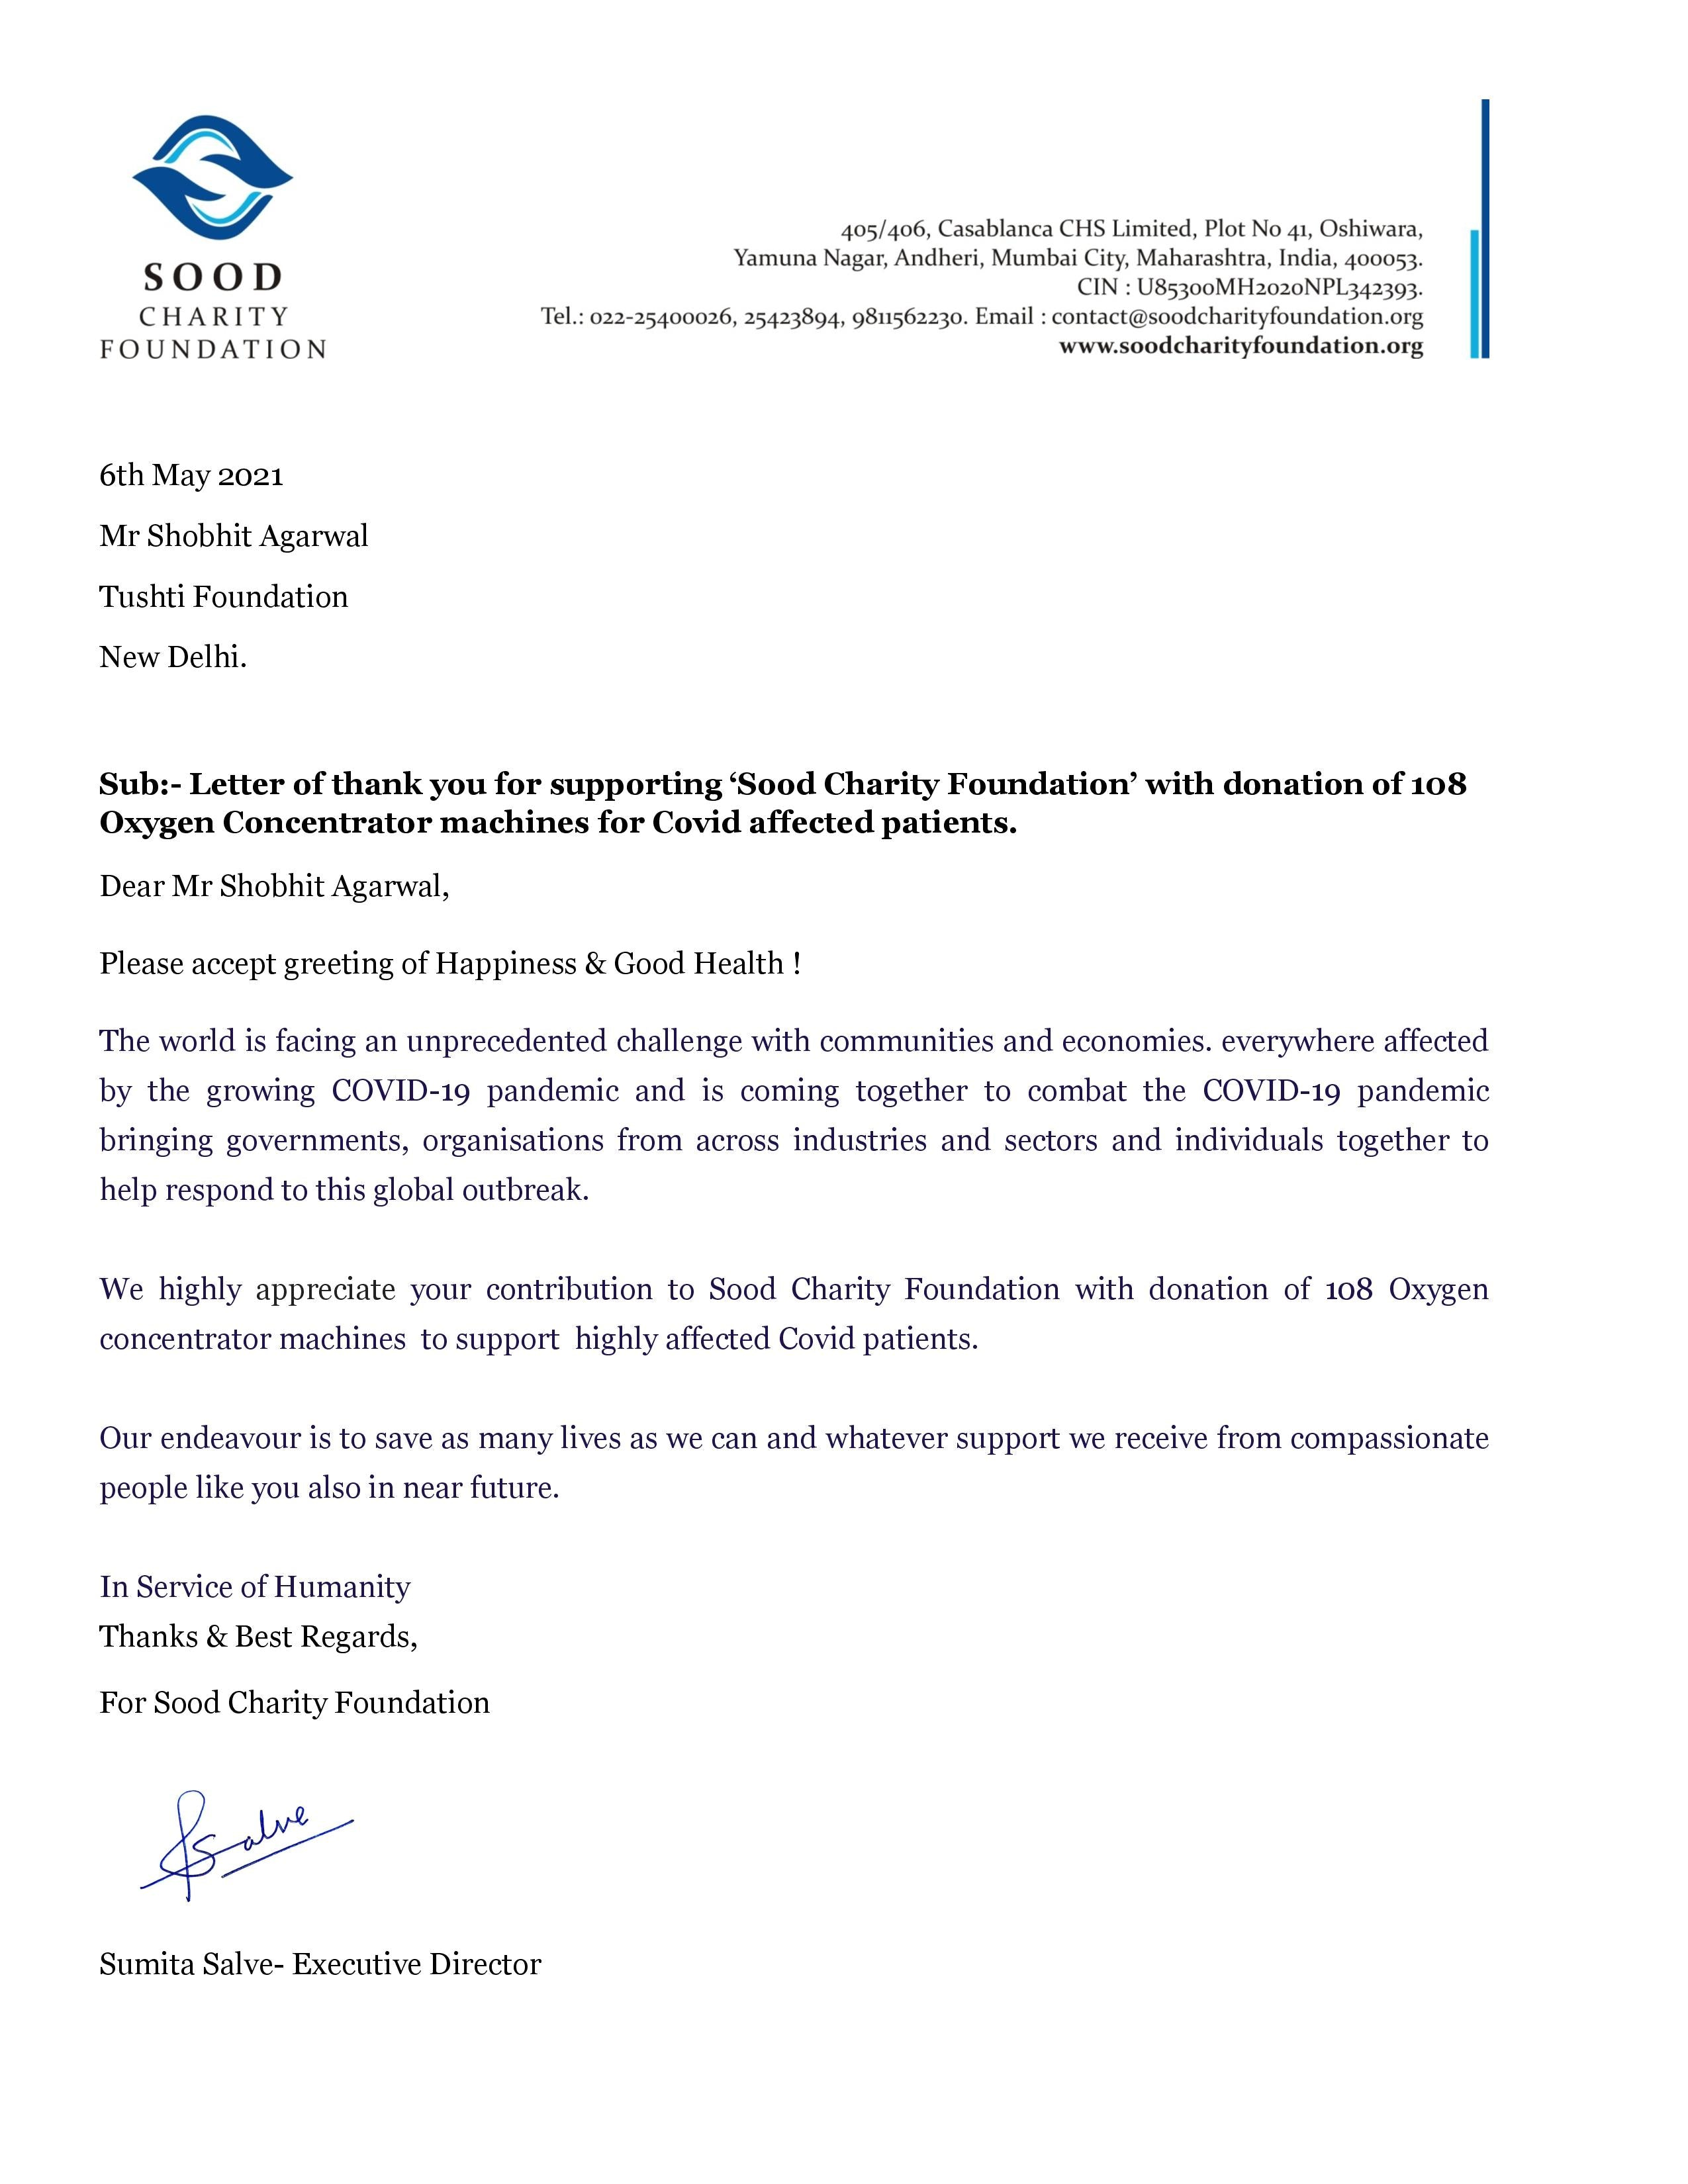 Sood Charity Foundstion - Tushti Foundation Oxygen Concentrator Donation